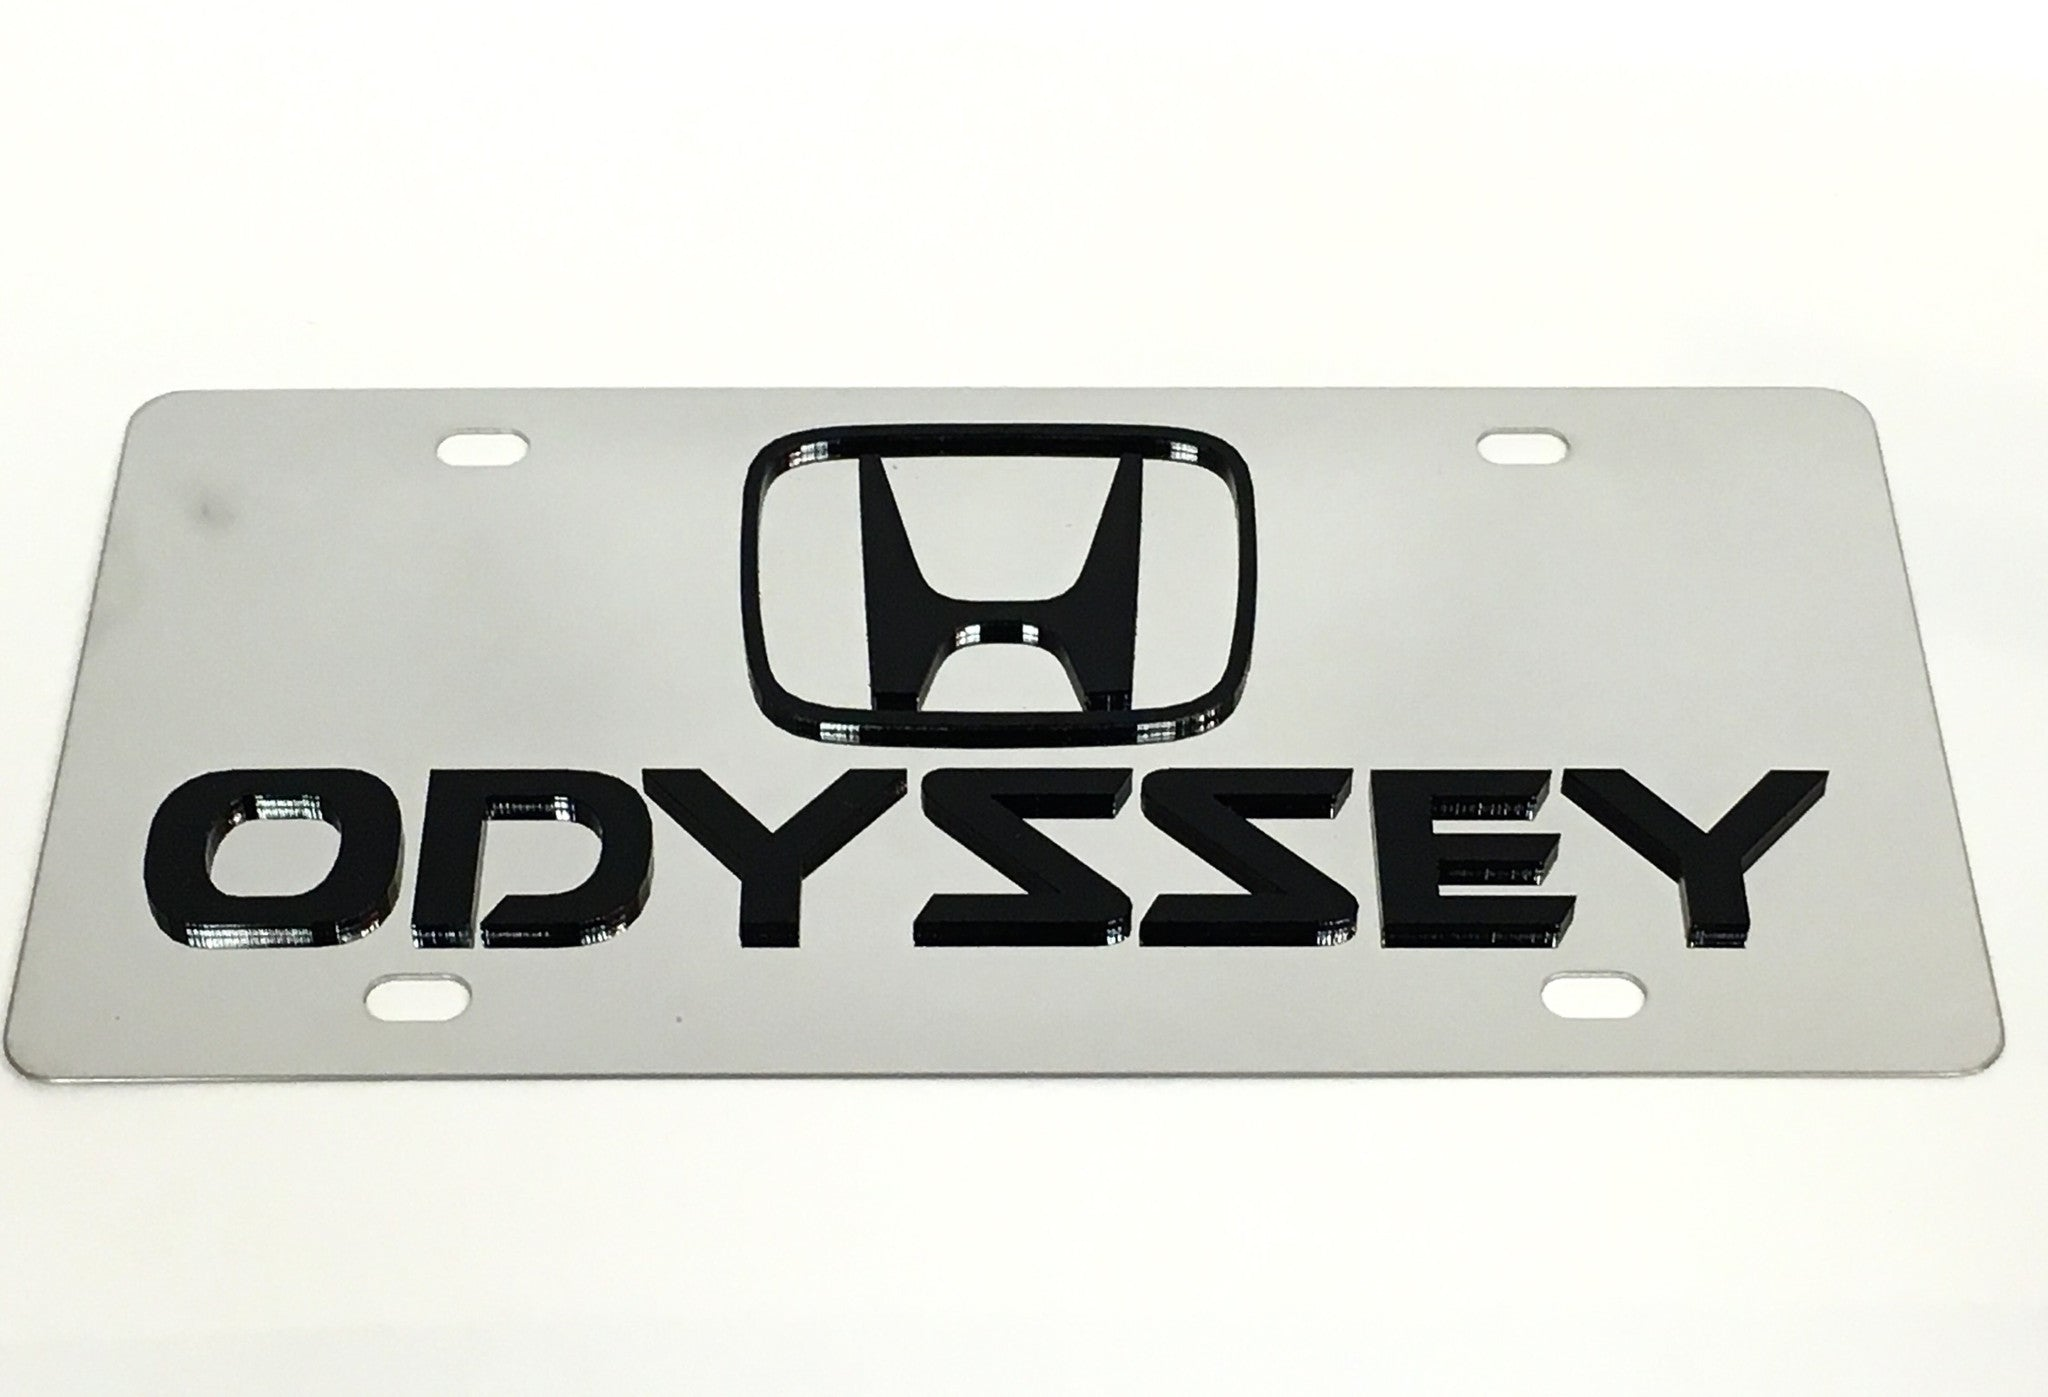 Honda Odyssey Stainless Steel License Plate